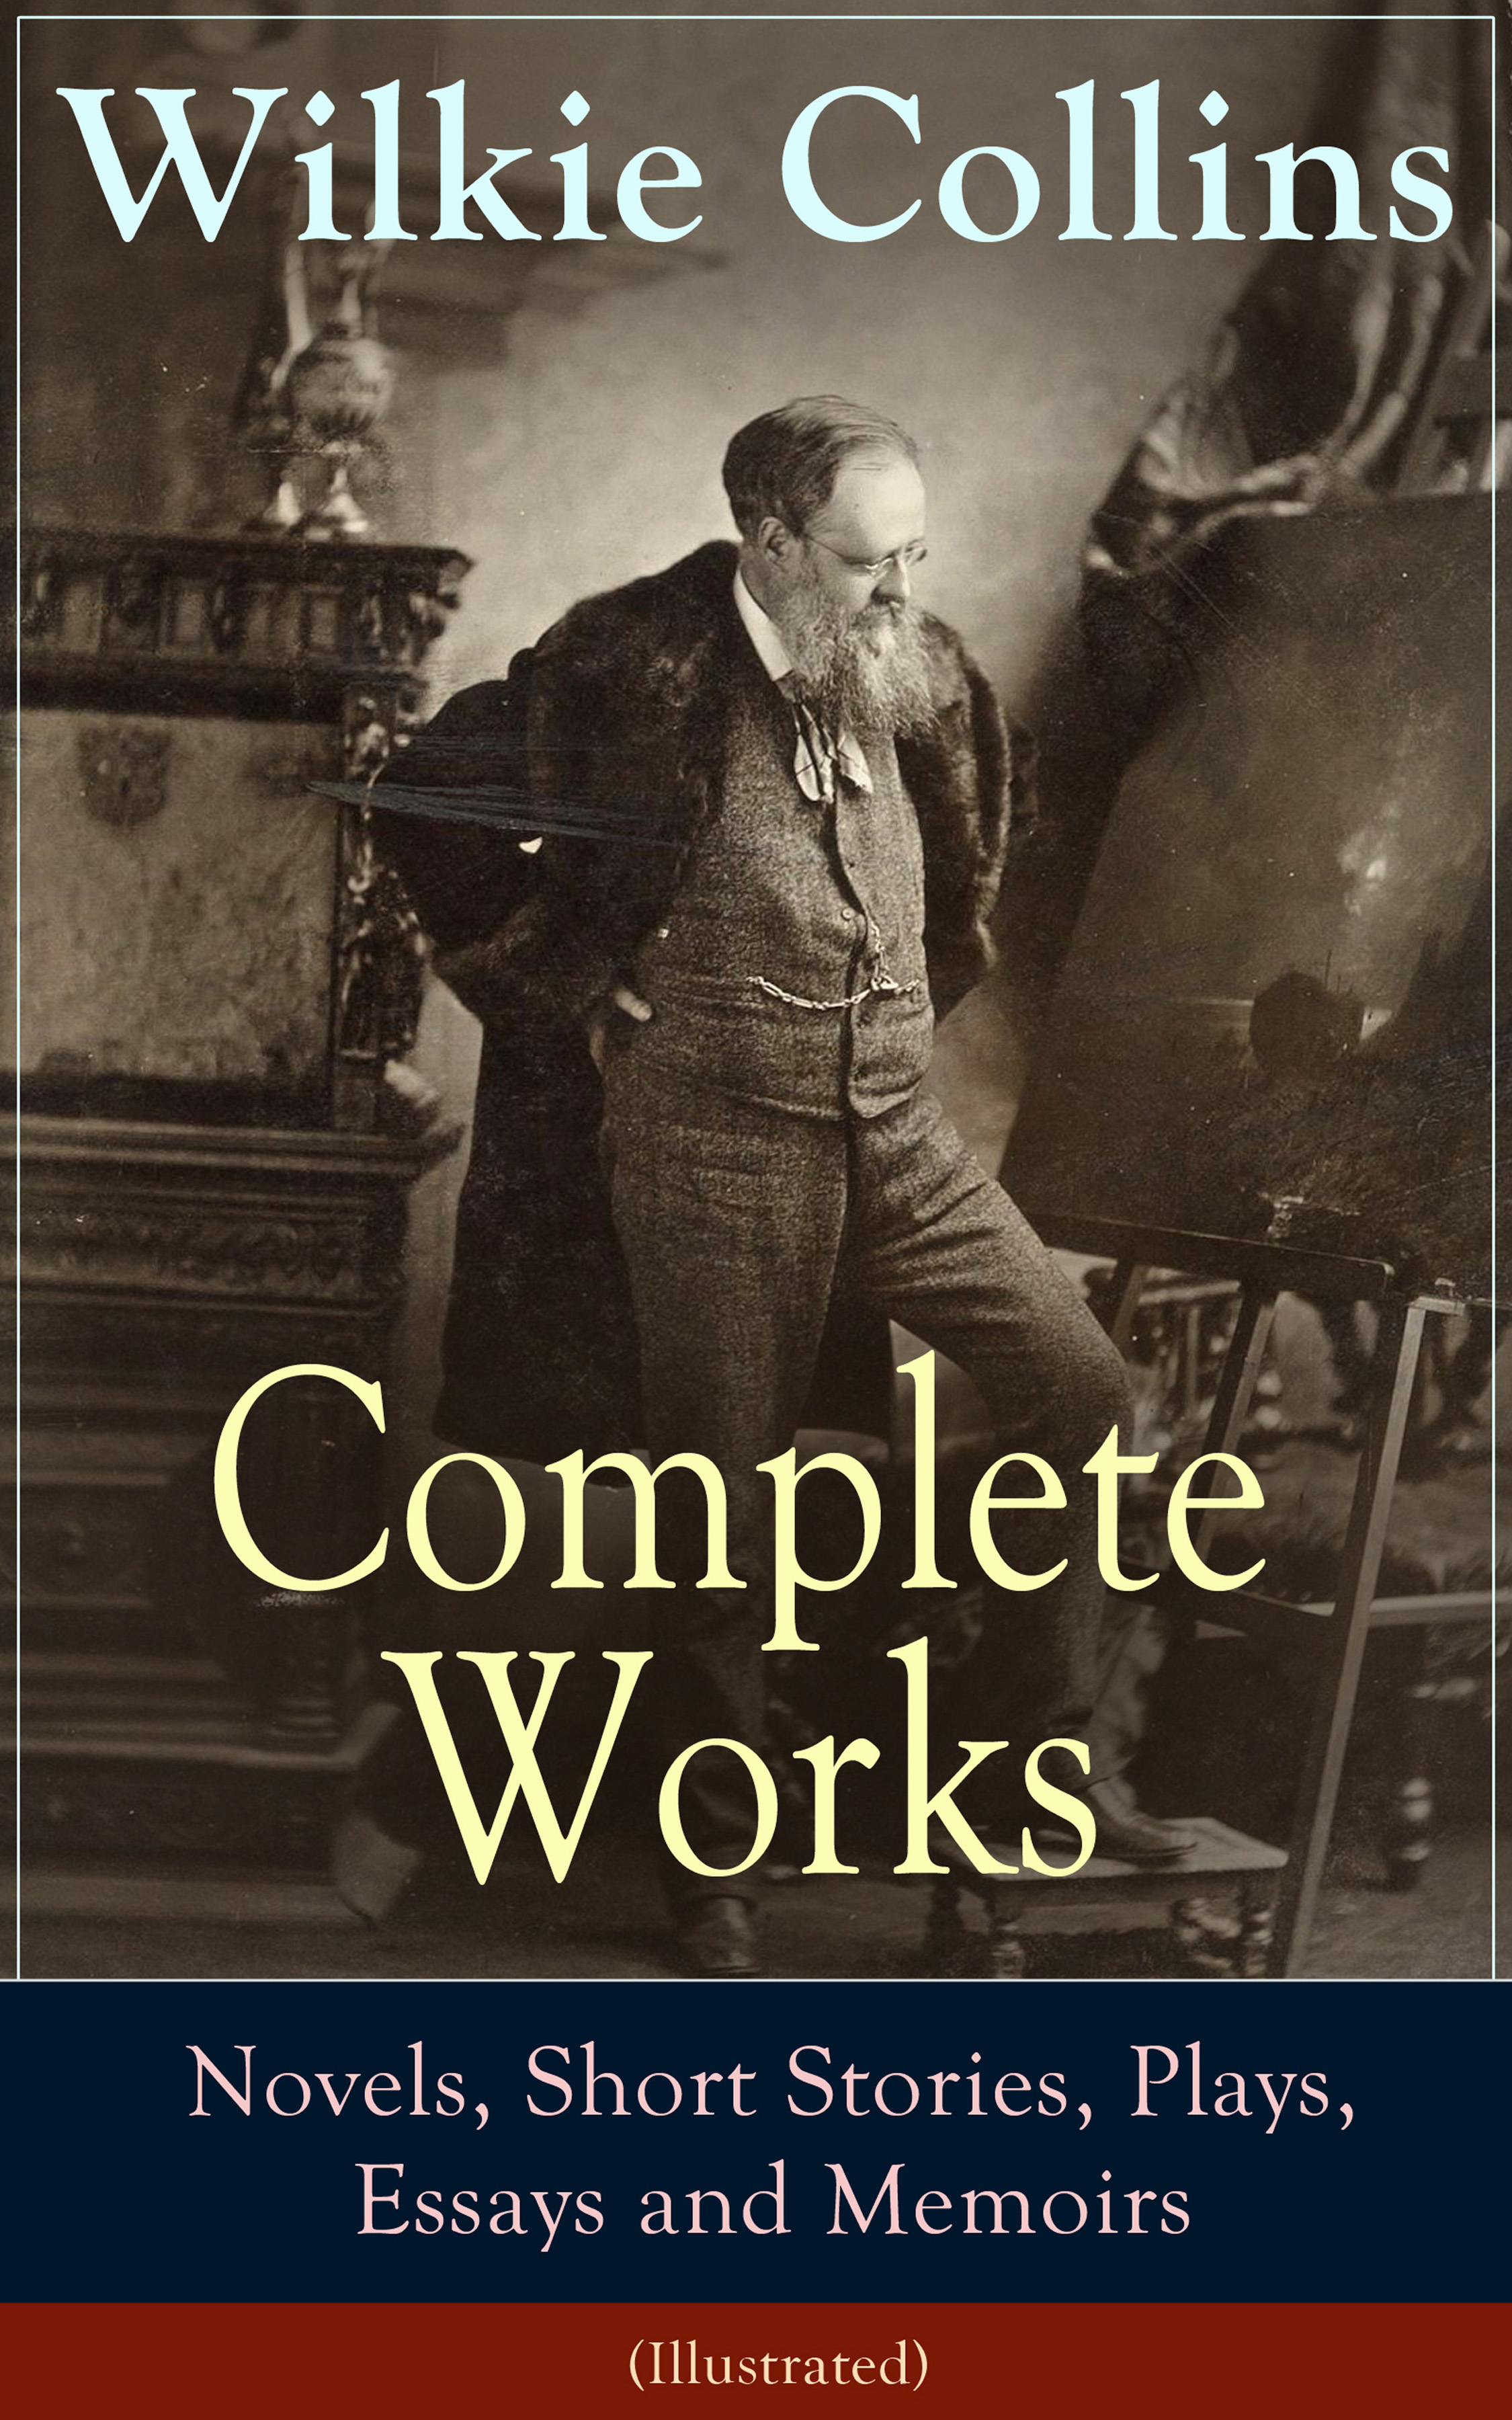 Wilkie Collins Collins Complete Works of Wilkie Collins: Novels, Short Stories, Plays, Essays and Memoirs (Illustrated)